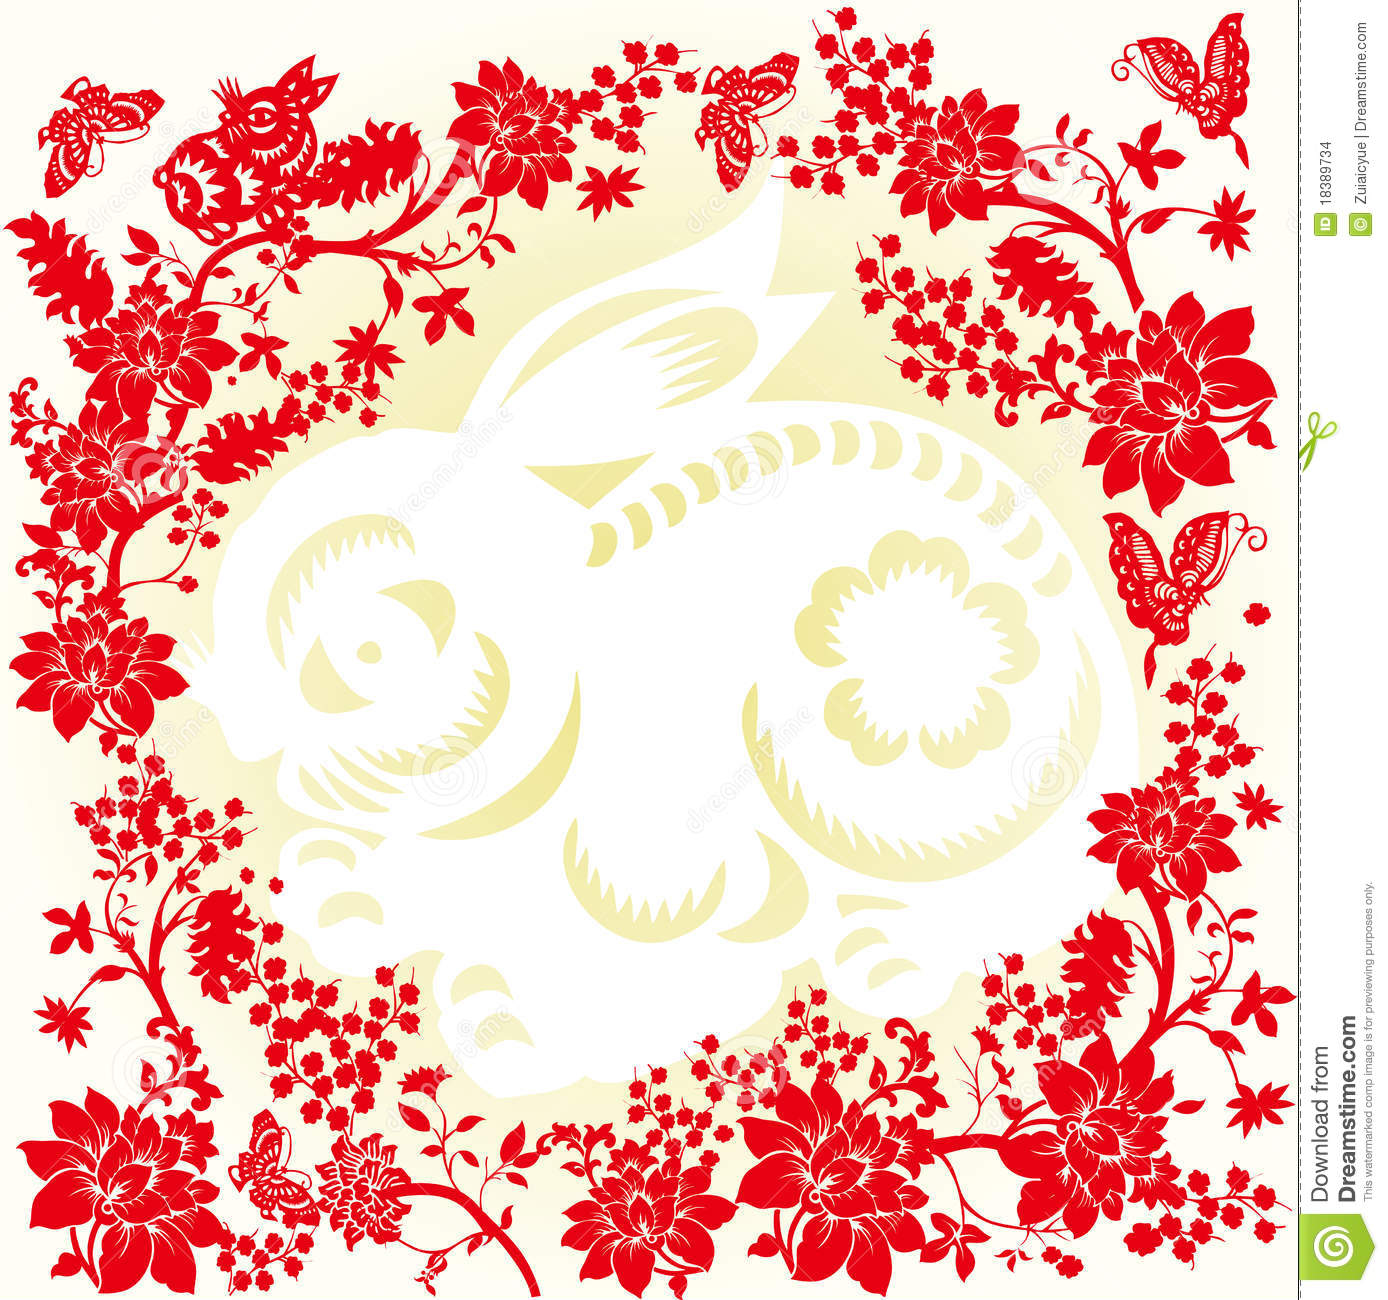 More similar stock images of ` Background of Chinese paper-cut `